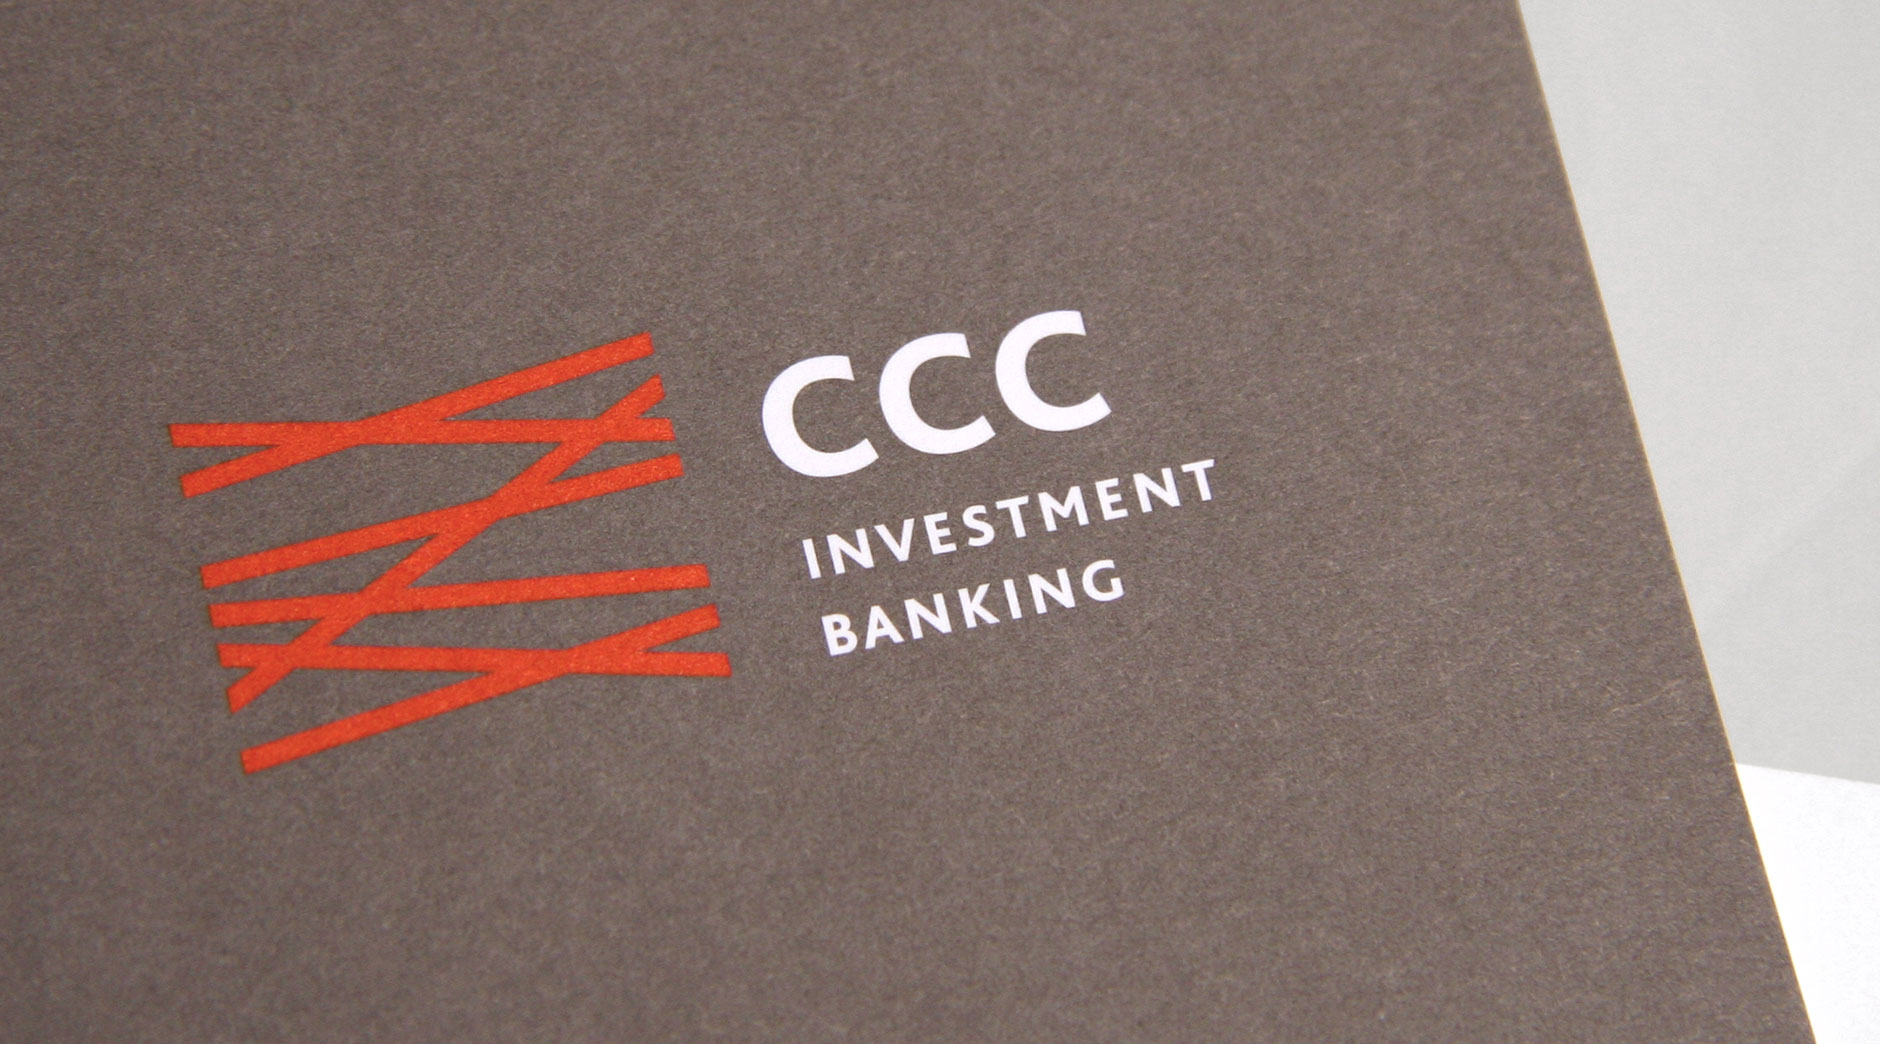 CCC Investment Banking print detail